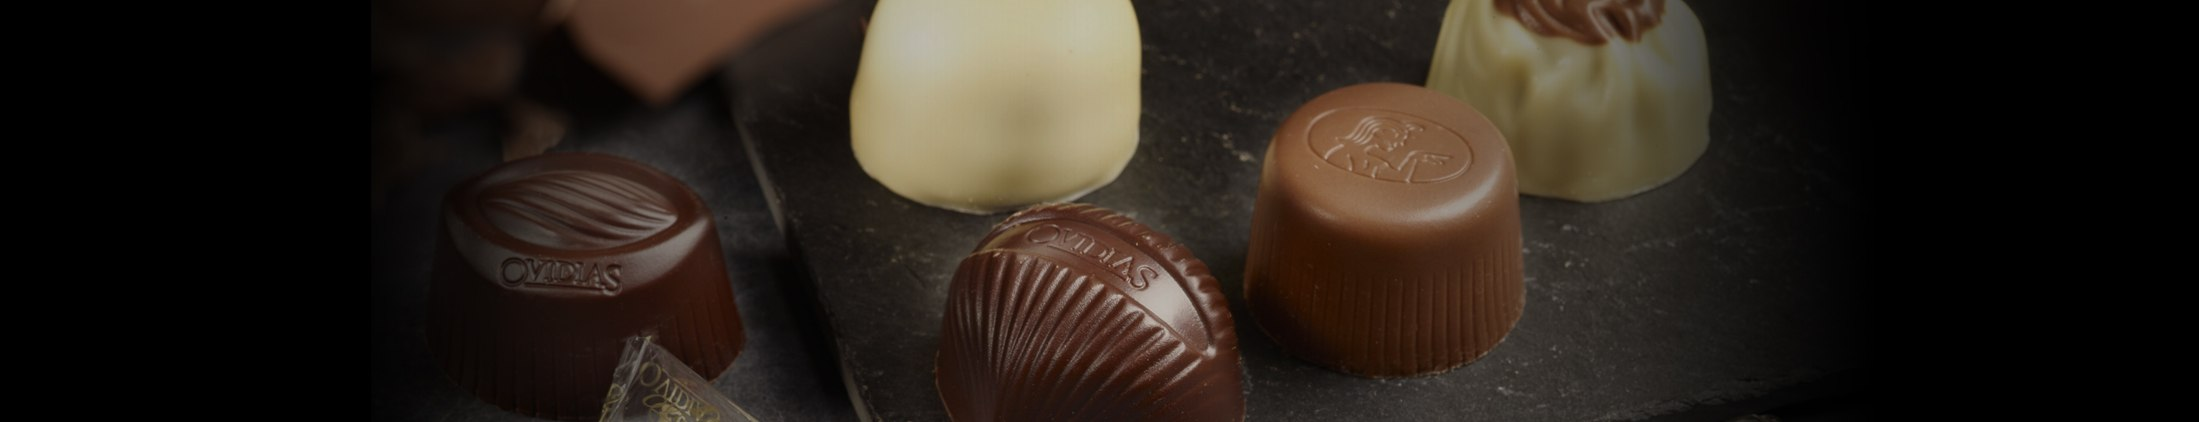 Chocolade proeven in 9 stappen